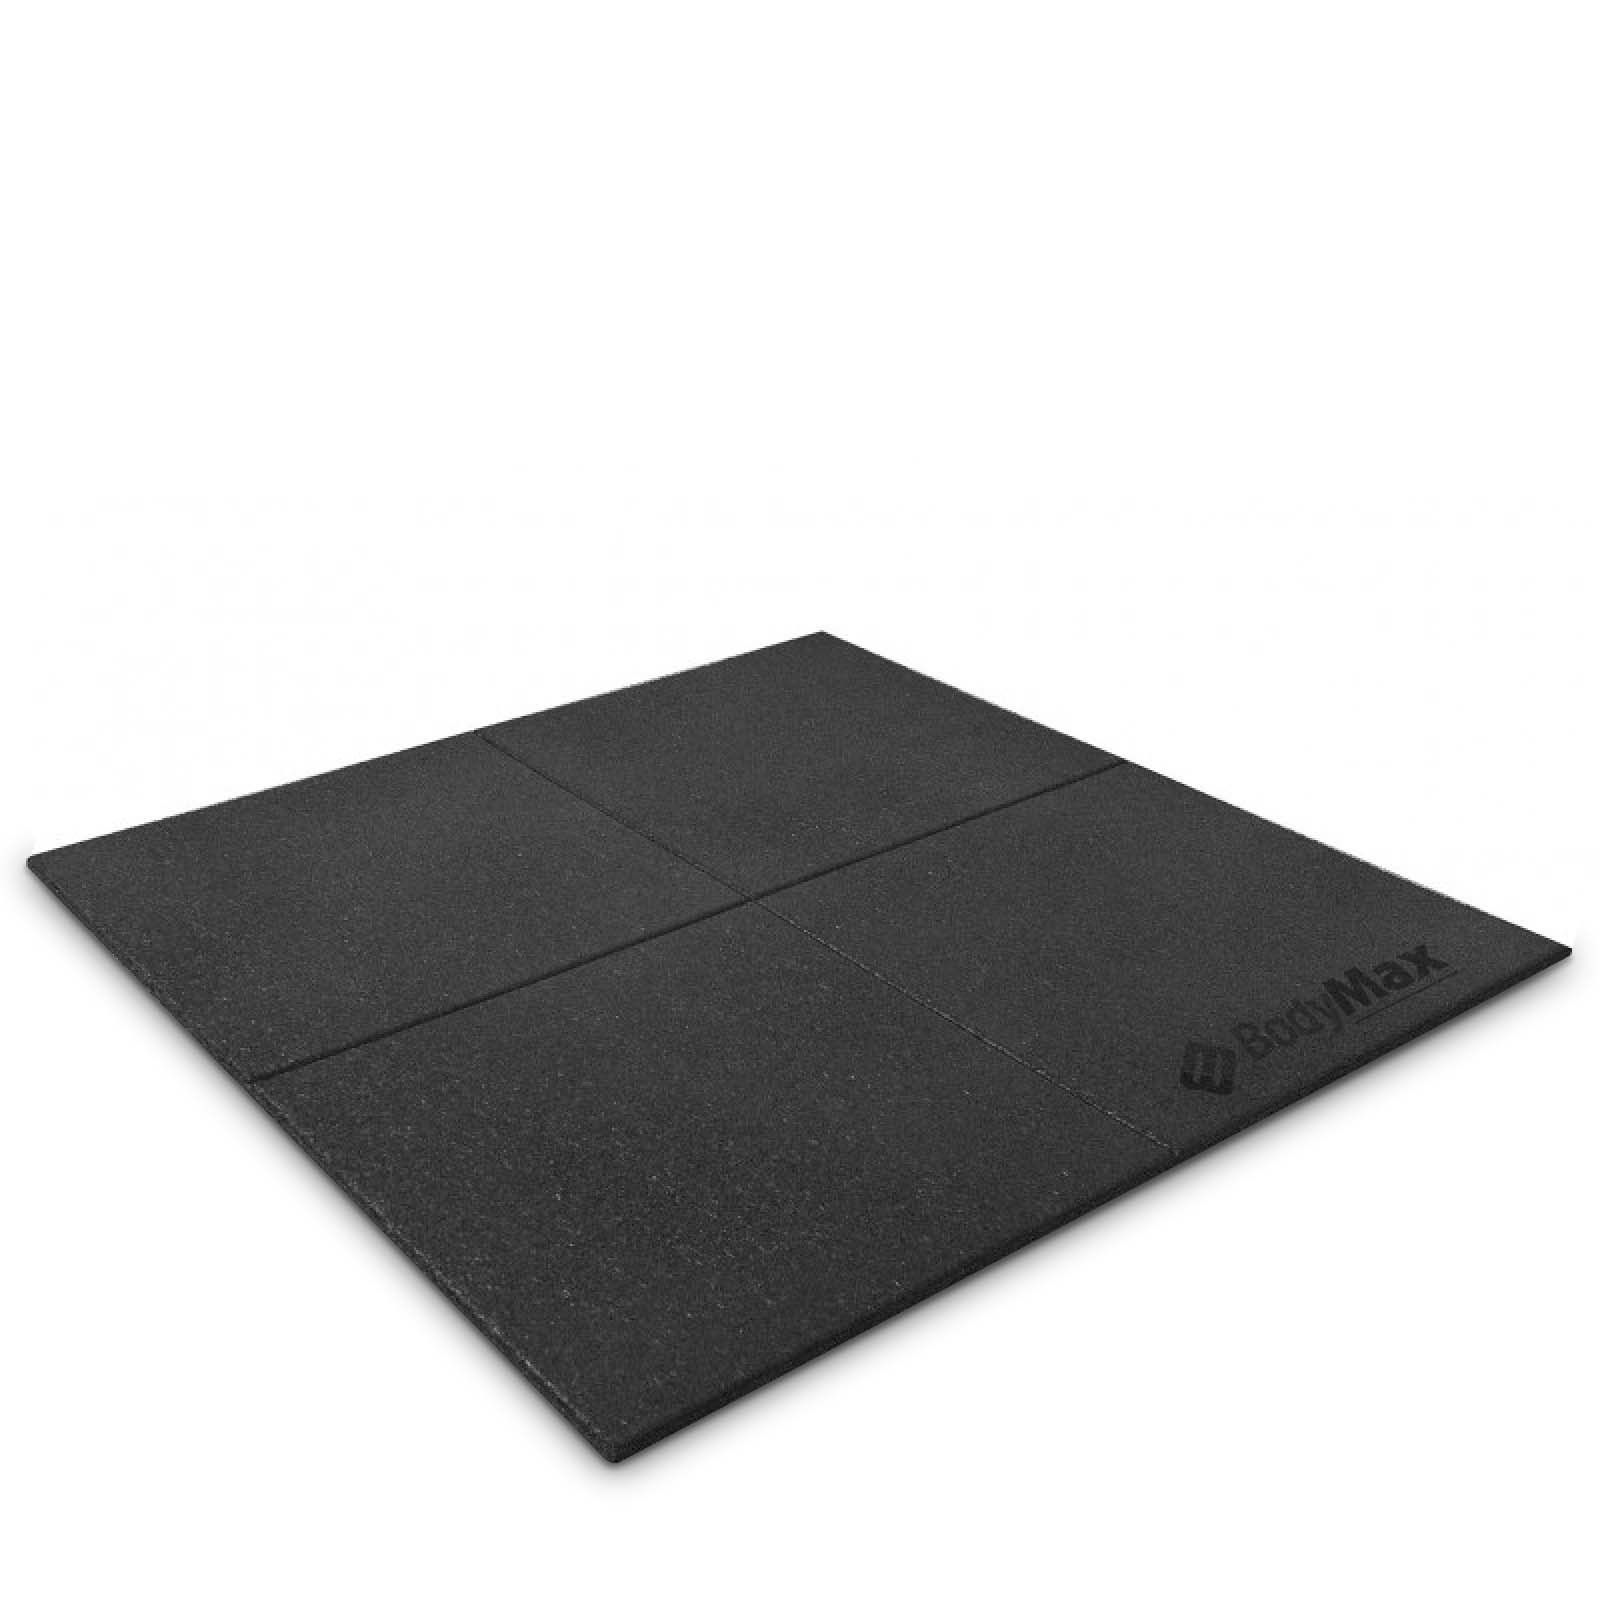 Bodymax enduramax black rubber gym floor tiles 1m x 1m x 20mm bodymax enduramax black rubber gym floor tiles x x gym equipment floor mats accessories at powerhouse fitness doublecrazyfo Choice Image